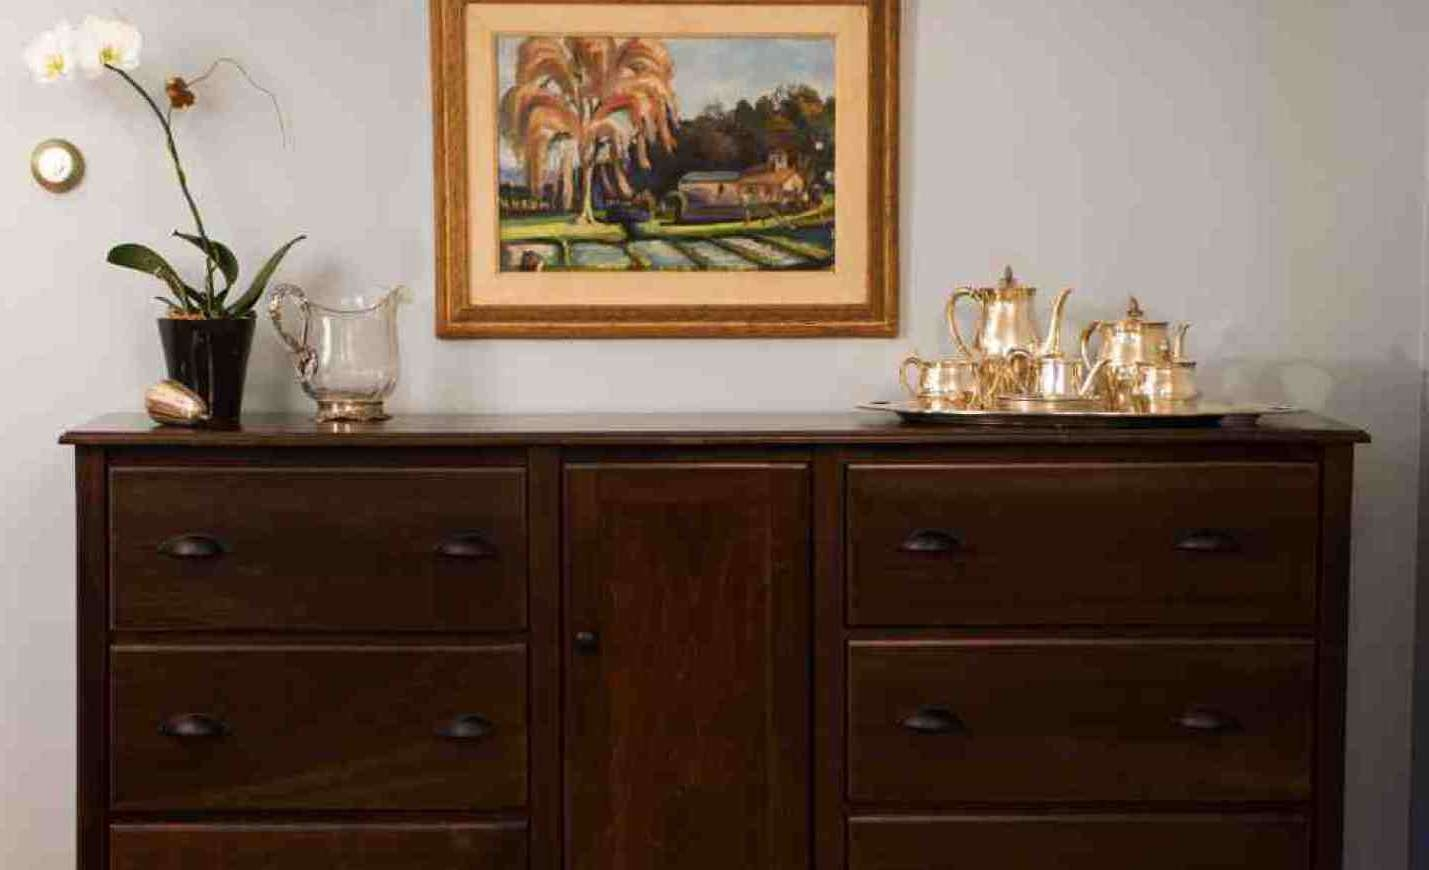 Sideboard : Sideboard Decor Awesome Living Room Sideboards Best 25 With Hallway Sideboards (View 13 of 20)